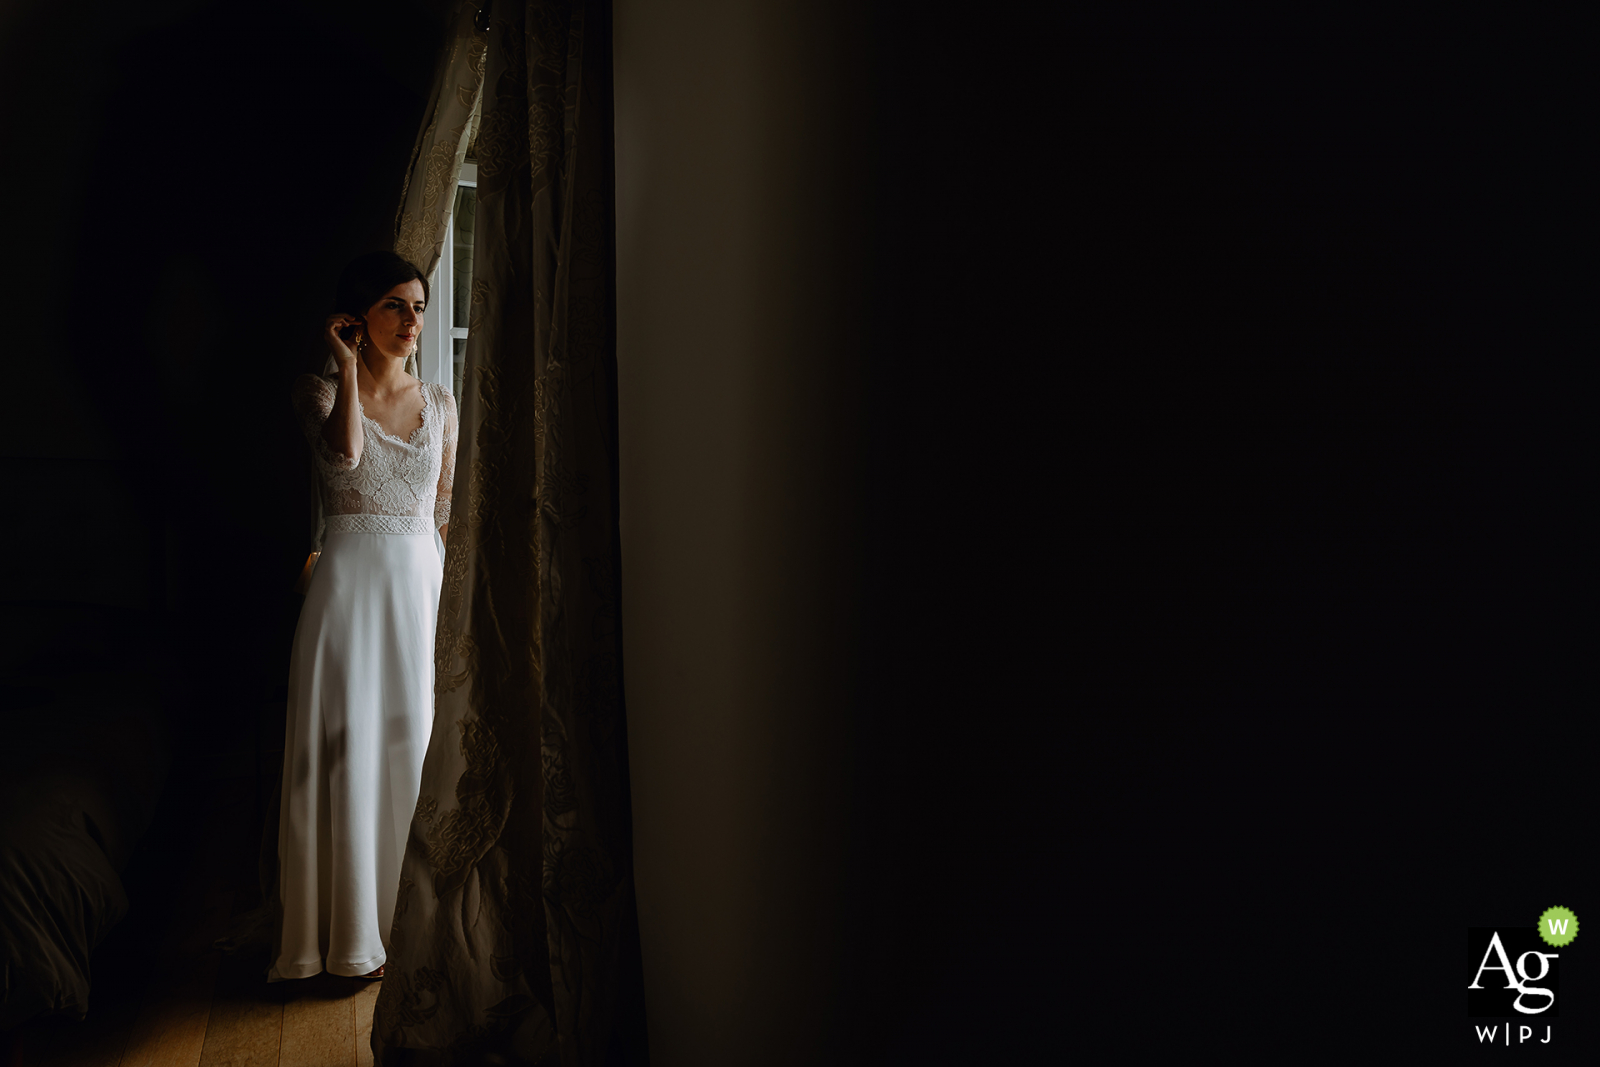 Auvergne-Rhône-Alpes wedding bride posing for a portrait next to a window opening with natural lighting